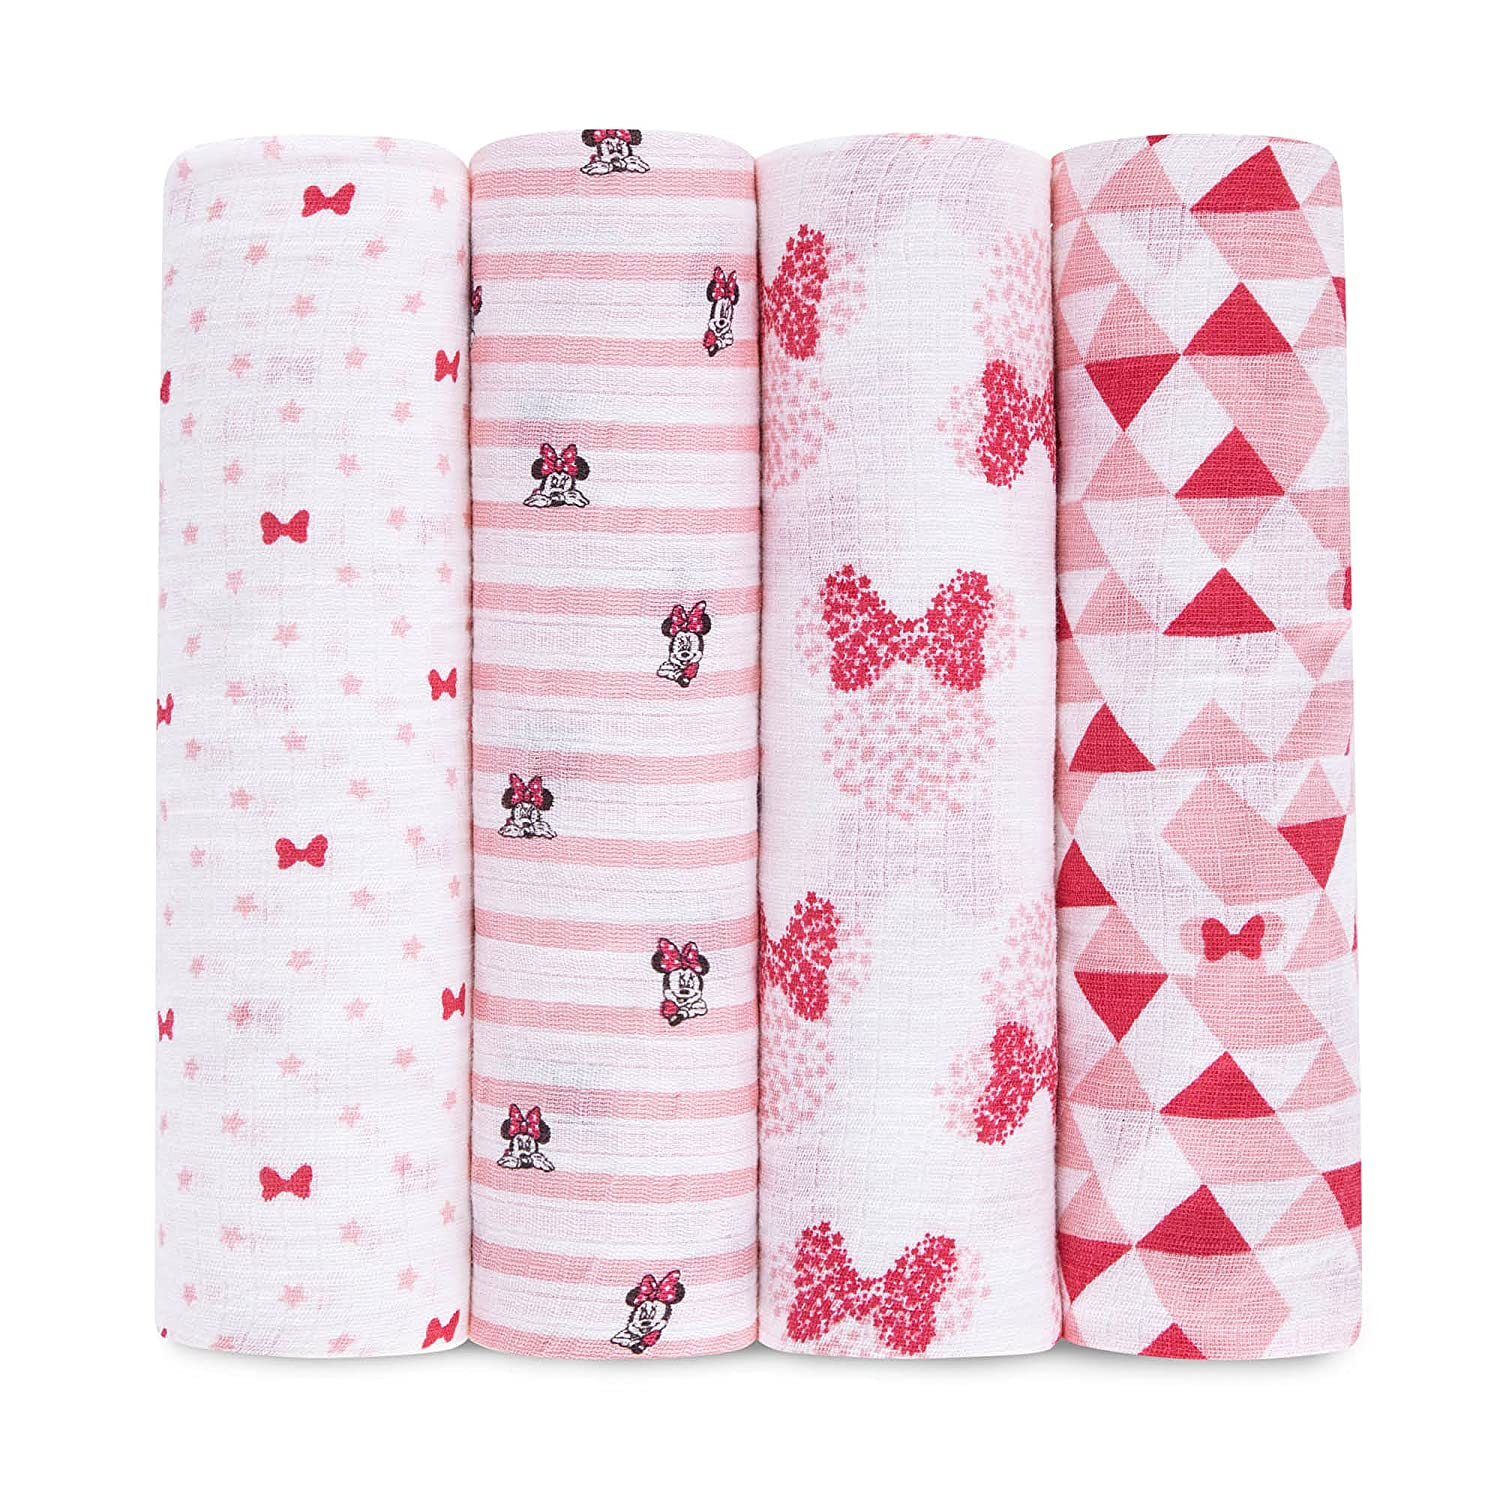 aden by aden + anais Disney Baby swaddle, 100% cotton muslin, 112cm X 112cm, 4 pack, graphic Minnie ADISN100G